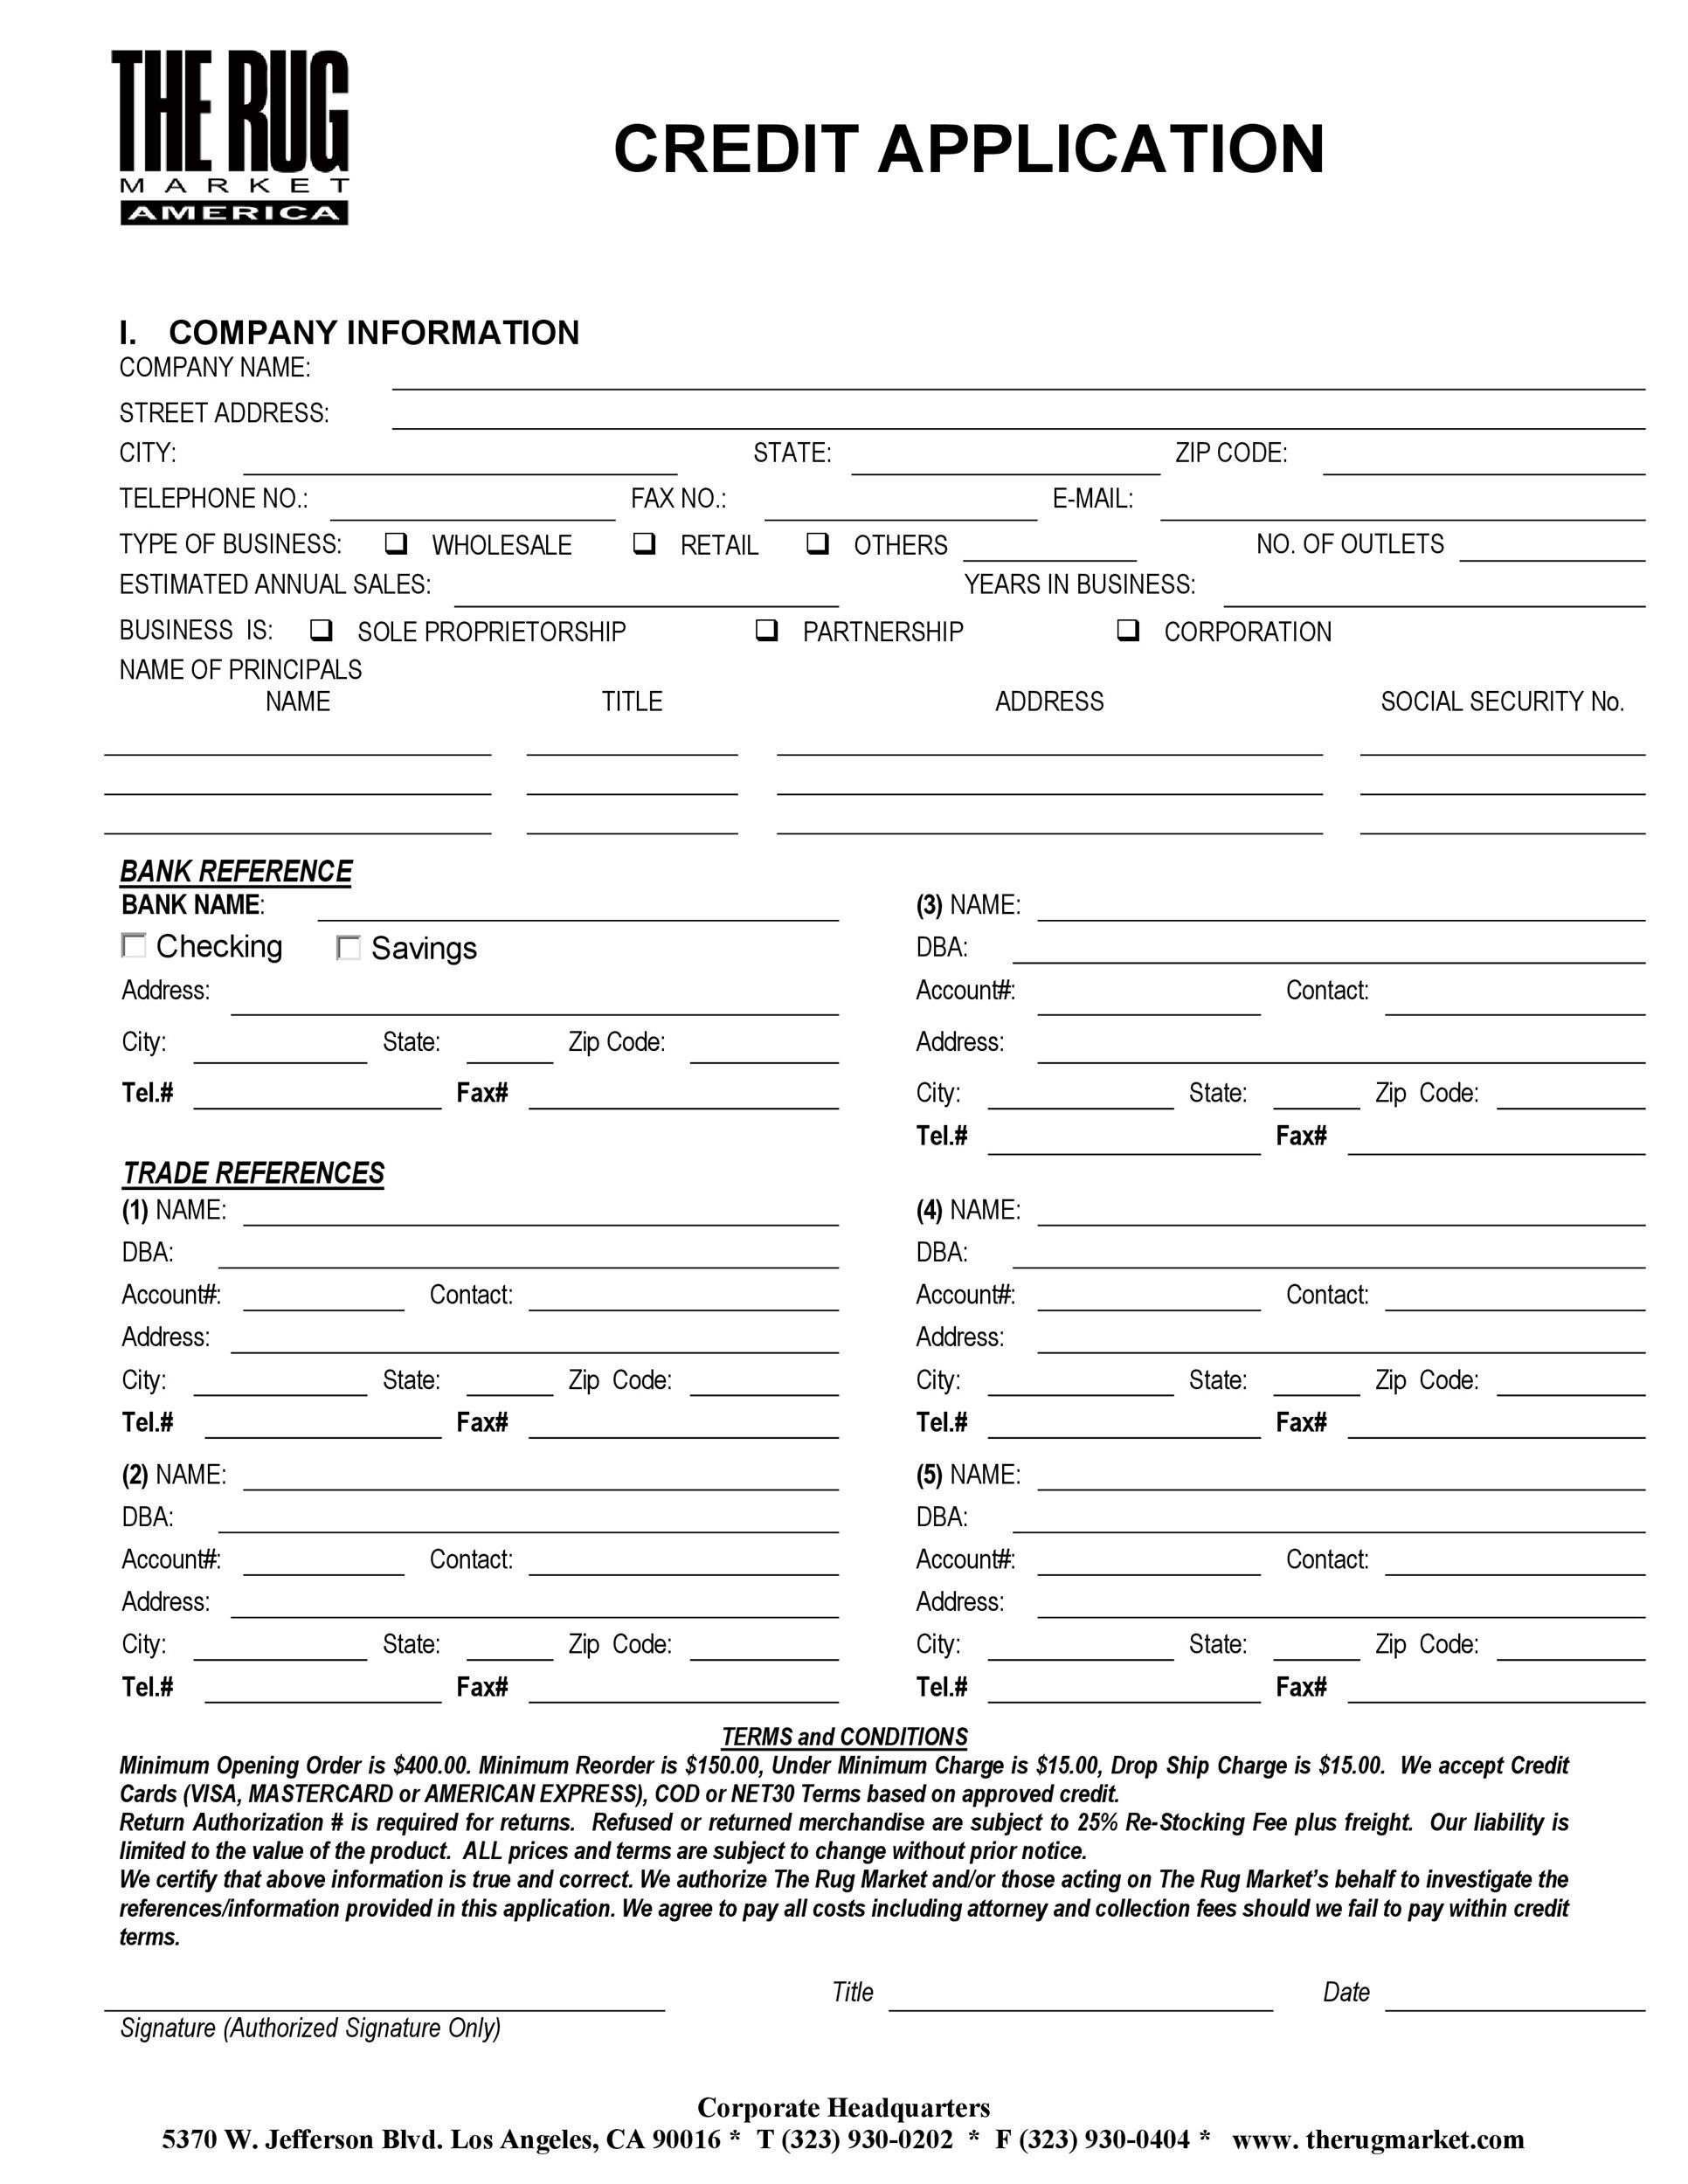 free credit application form templates samples - Sample Application Forms